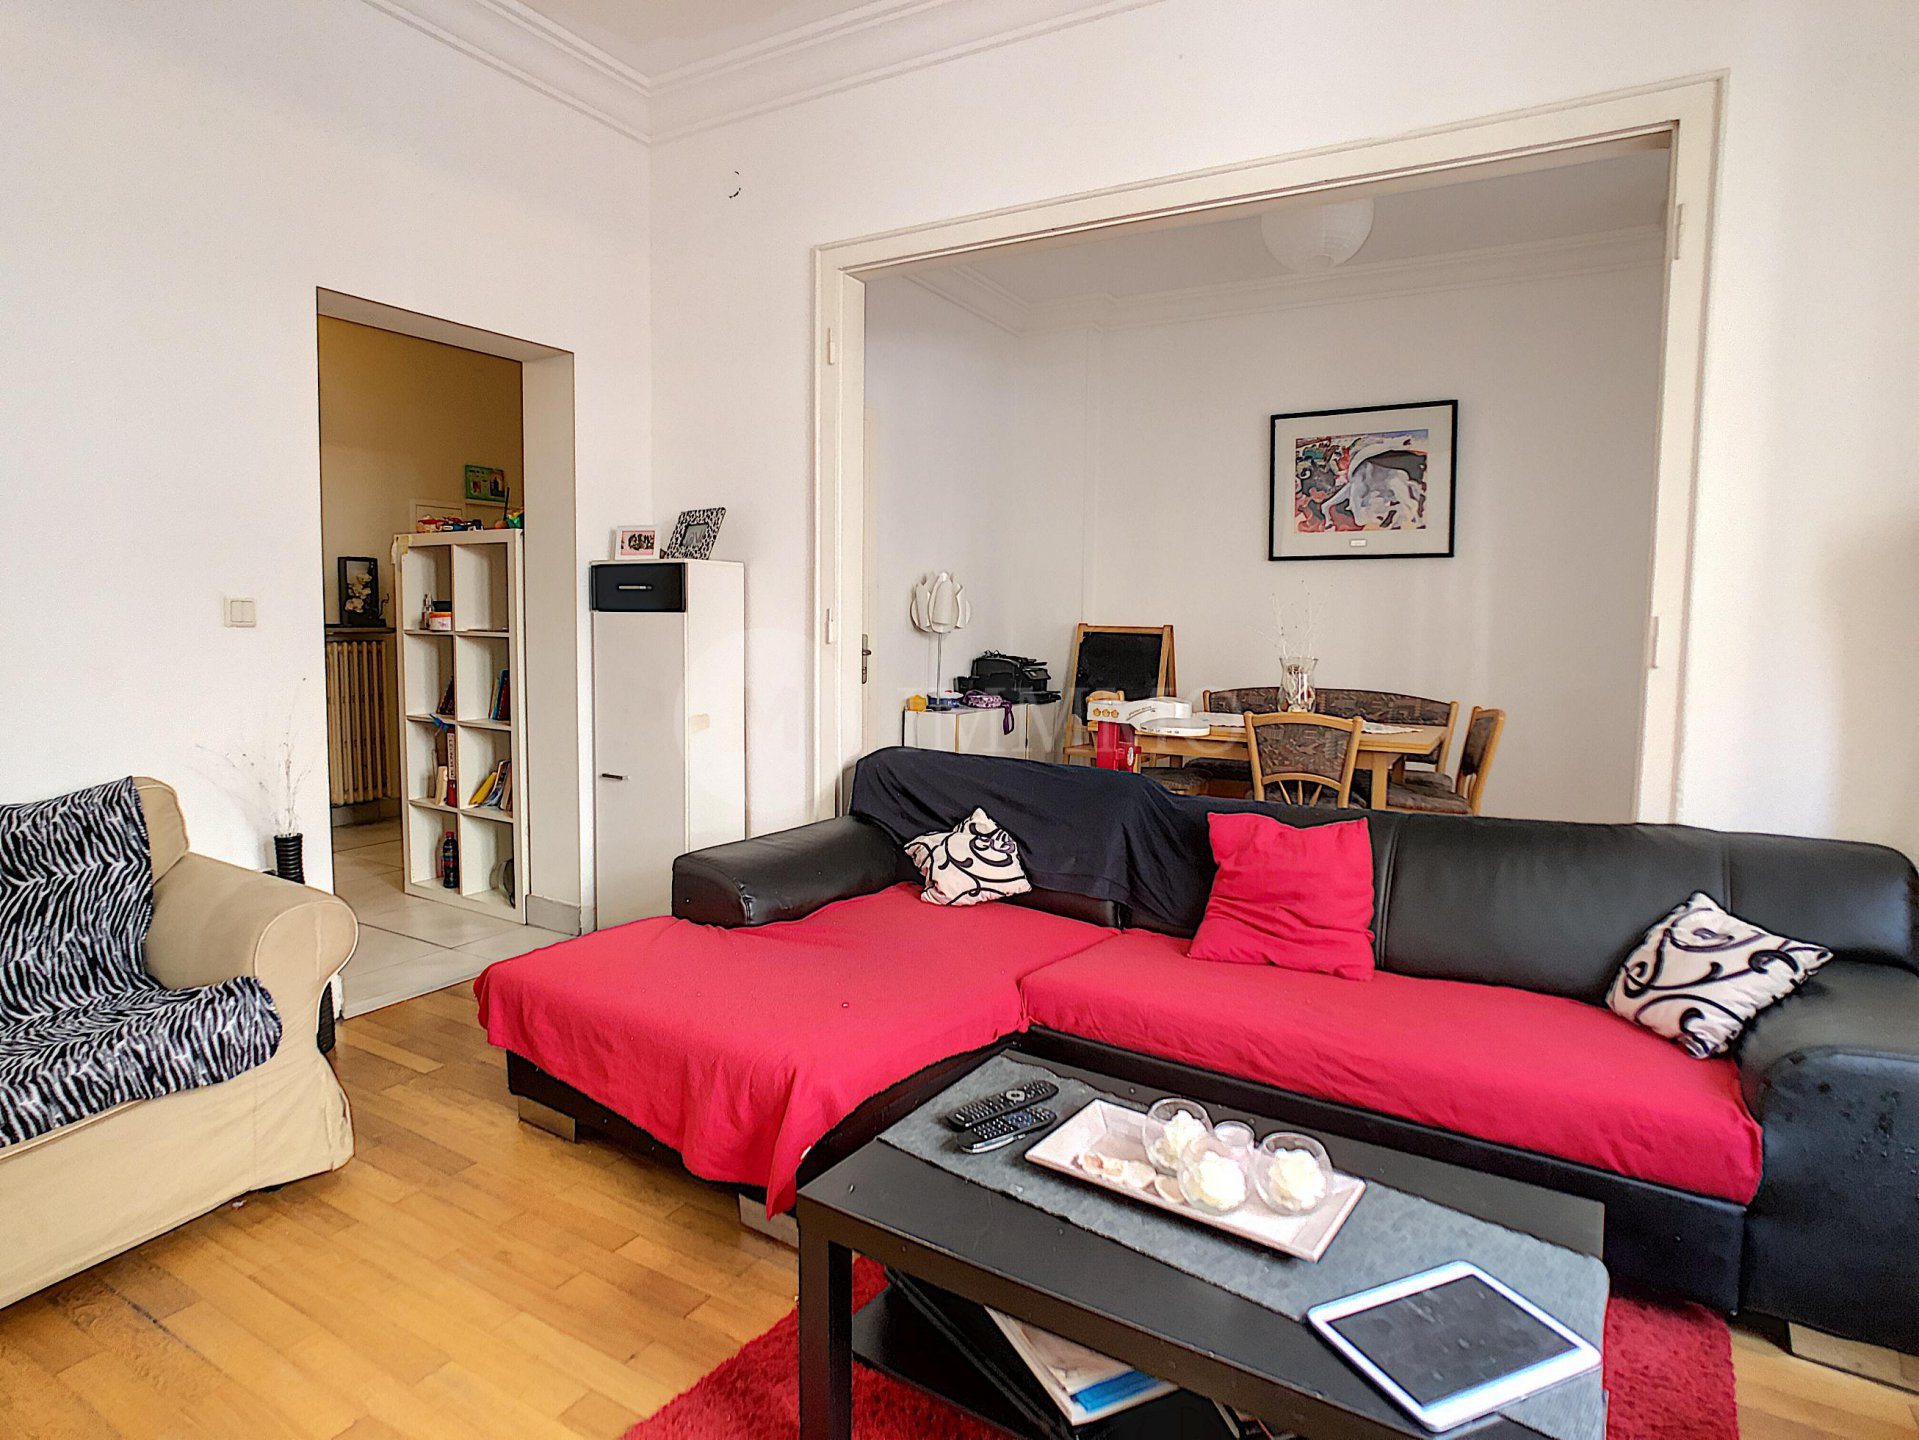 Sale Apartment - Luxembourg Gare - Luxembourg